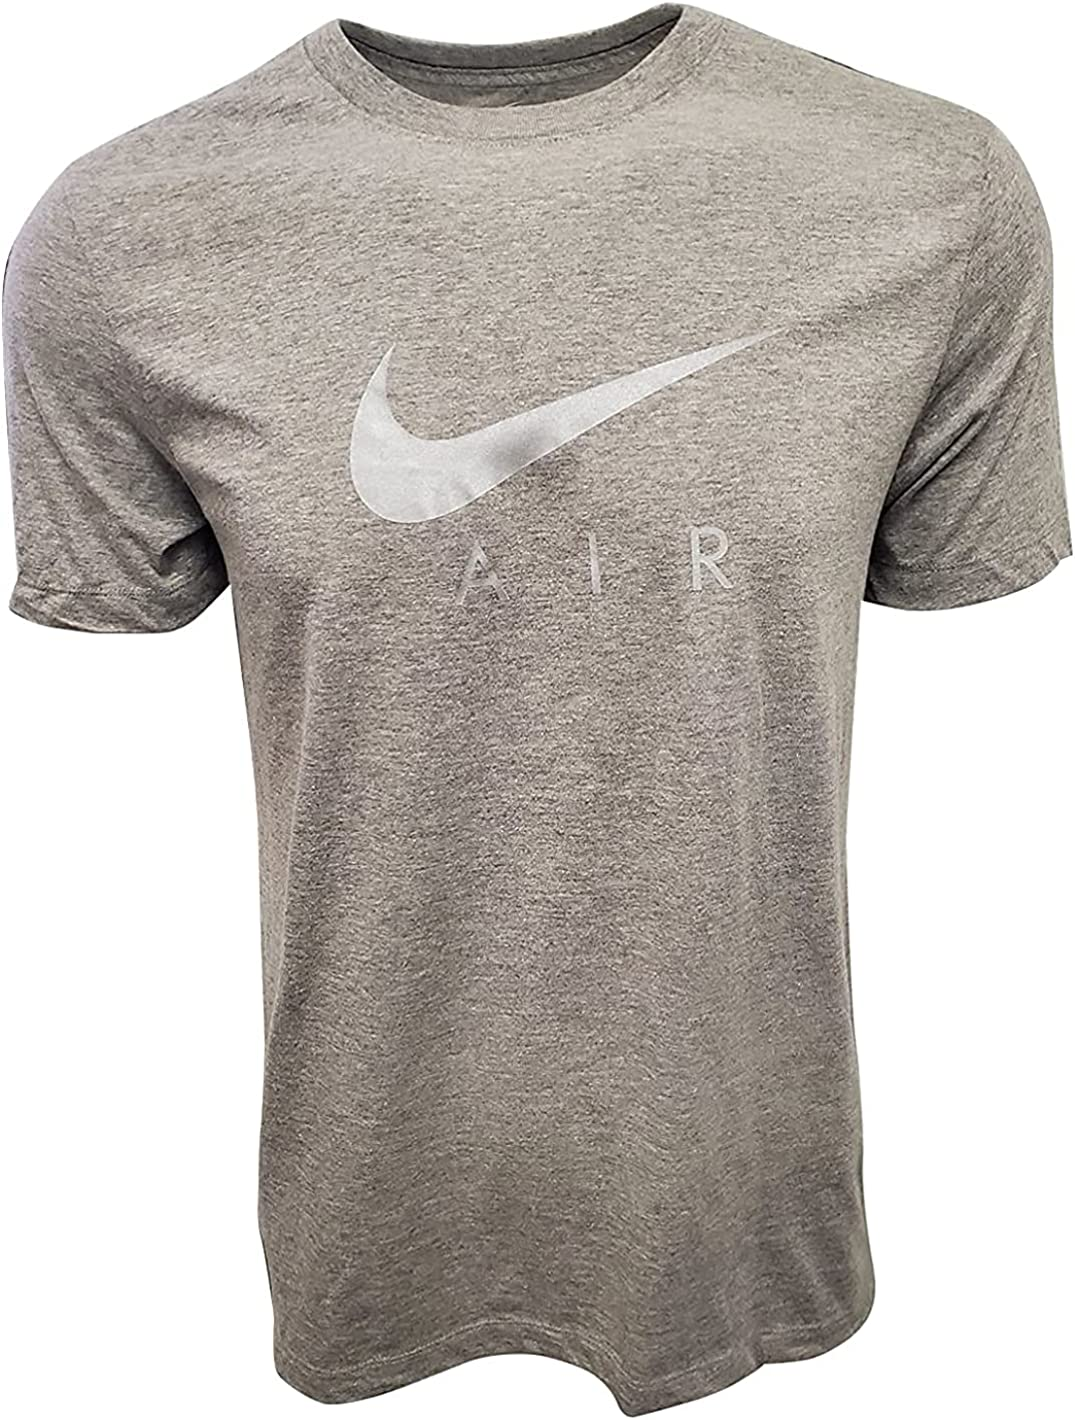 Nike Men's Swoosh Air Metallic Graphic Tee Manufacturer OFFicial All stores are sold shop Black Small